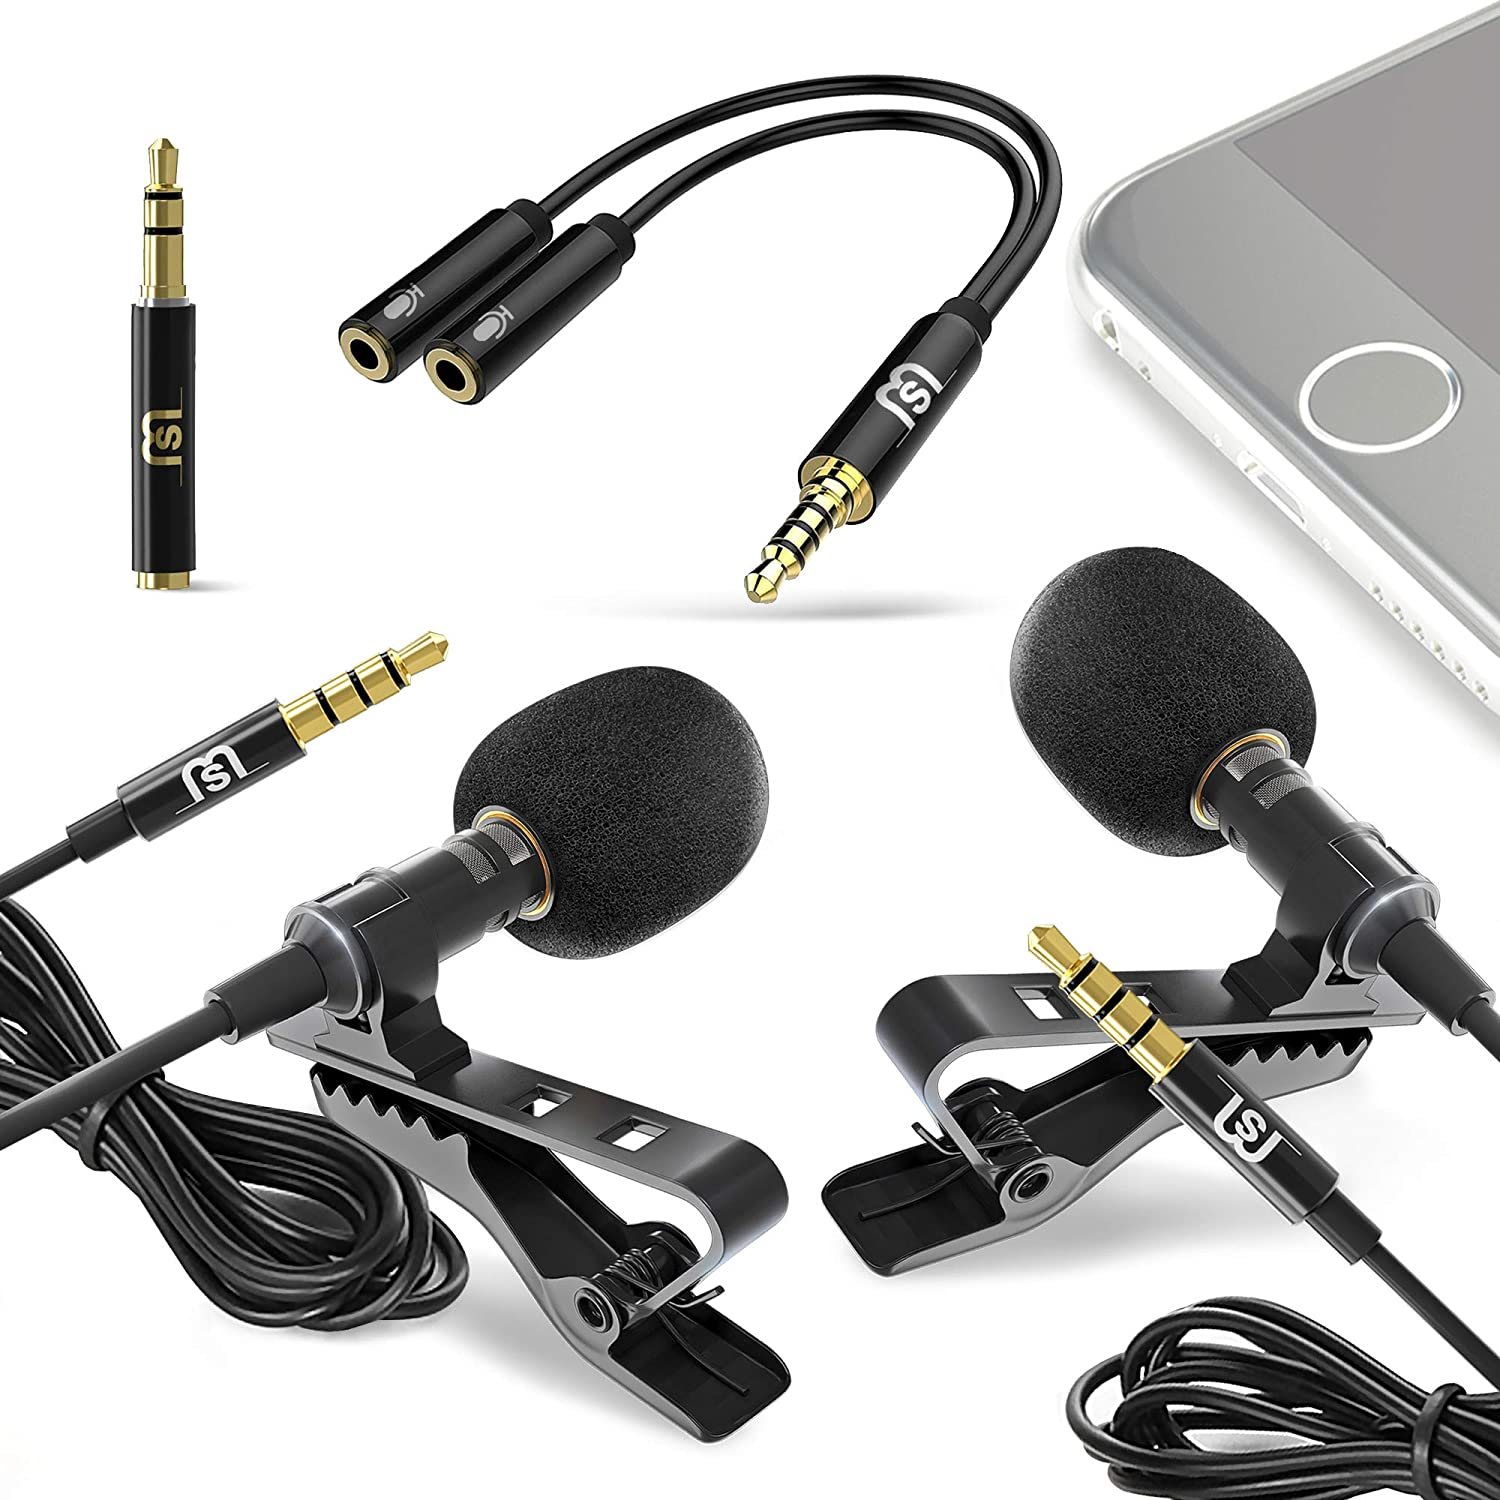 2-Pack Bundle Ultimate Lavalier Microphone for Bloggers and Vloggers Lapel Interview Mic Clip-on Omnidirectional Condenser for iPhone Ipad Samsung Android Windows Smartphones